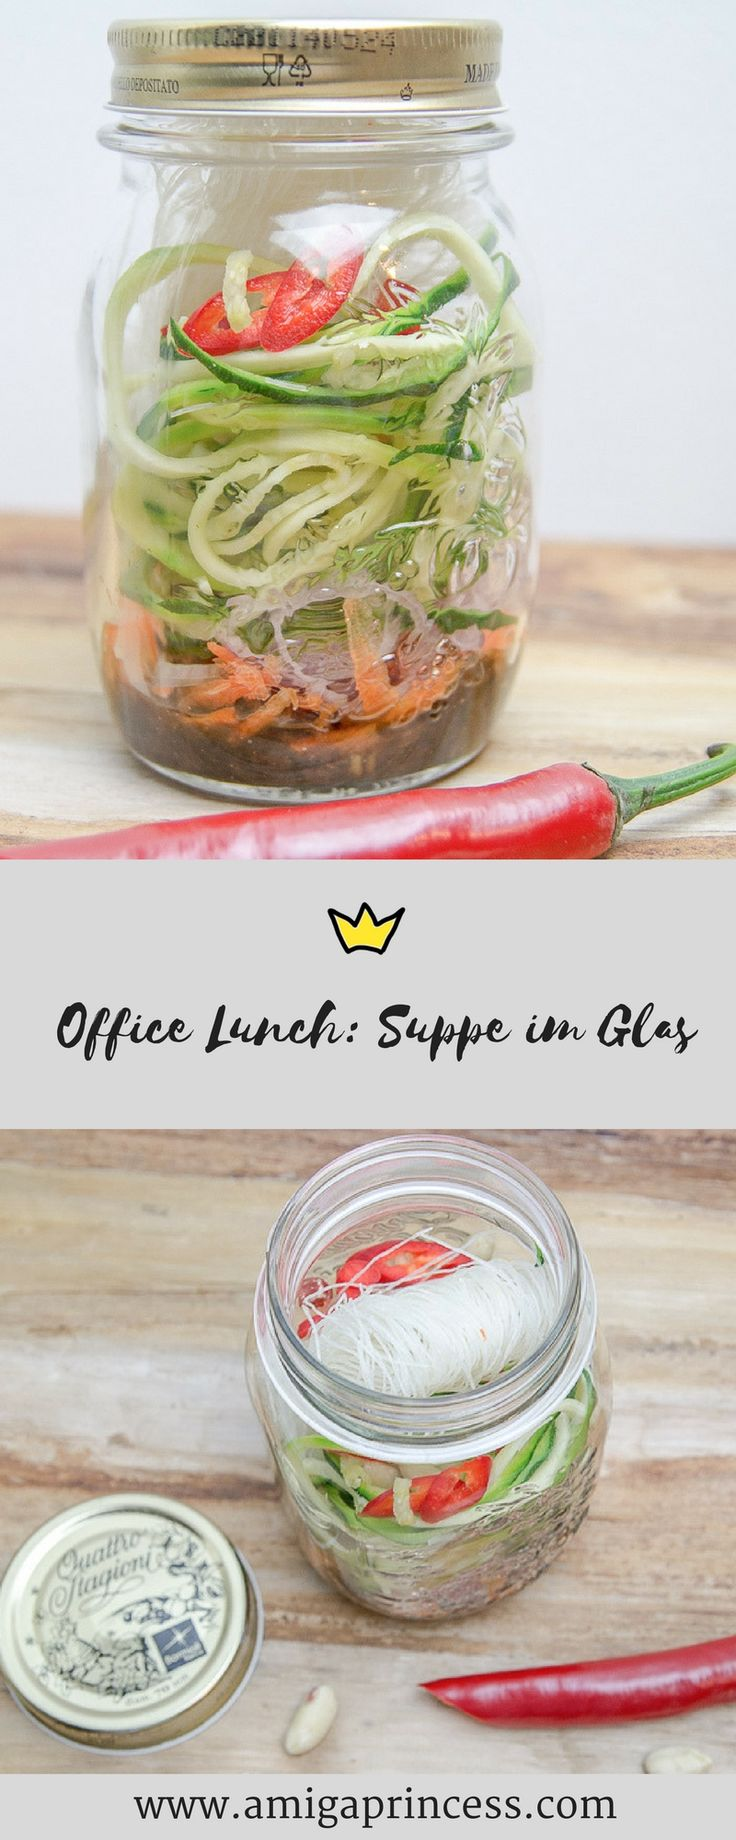 Suppe im Glas - easy office lunch, schnelles Essen ohne Herd und Mikrowelle, Soup in Mason Jar, Rezept, get the glow, Suppe thailändische Art, Foodblog, Foodphotography, www.amigaprincess.com